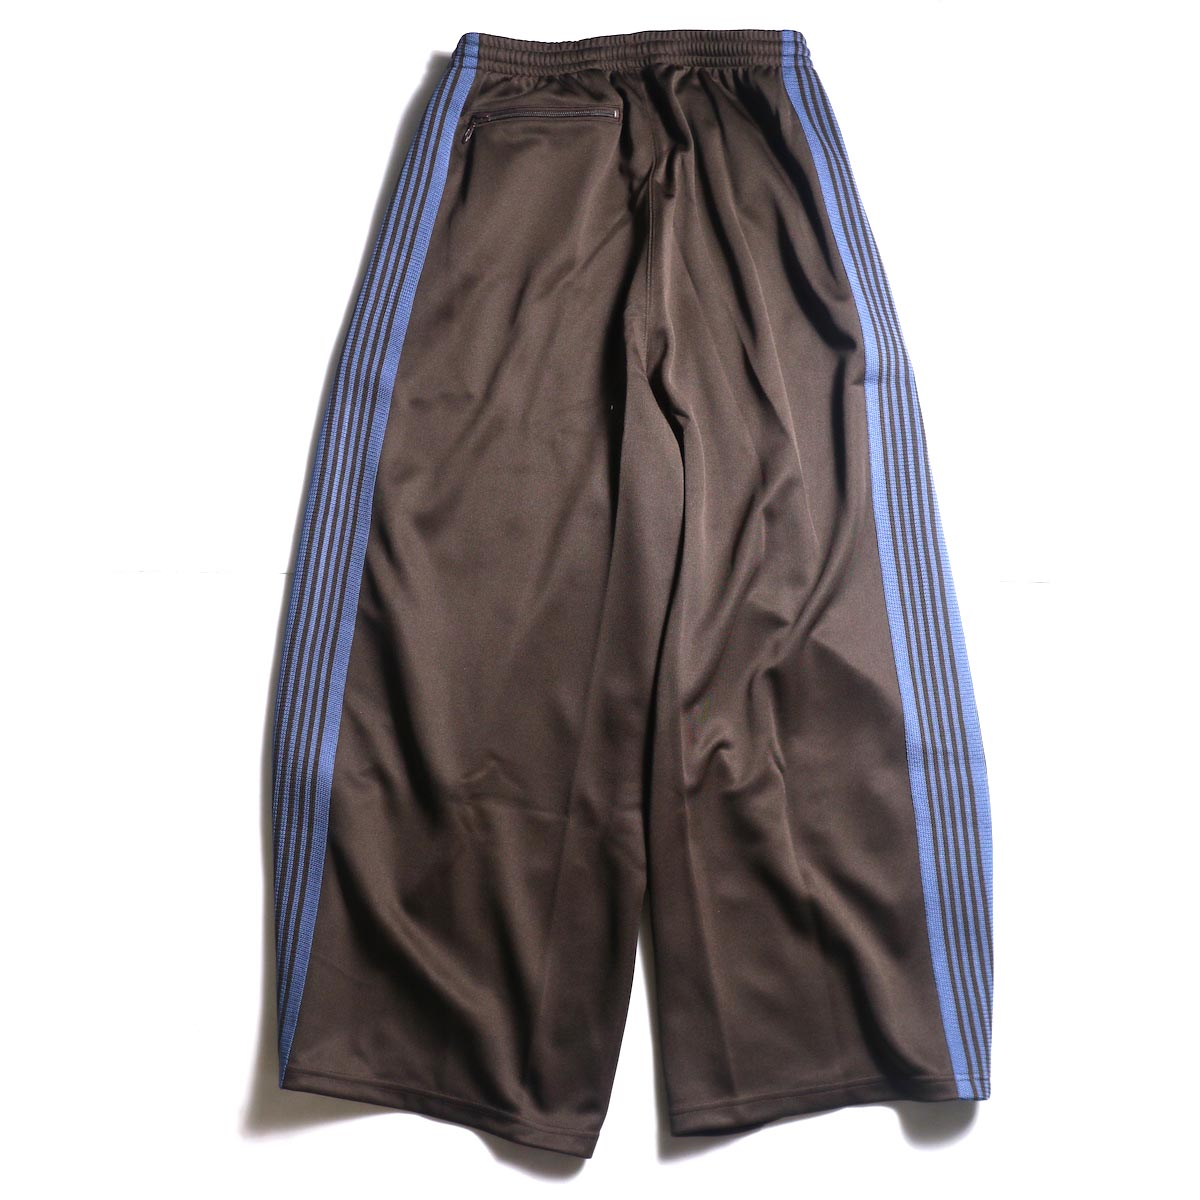 Needles / H.D. TRACK PANT - POLY SMOOTH (Brown)背面